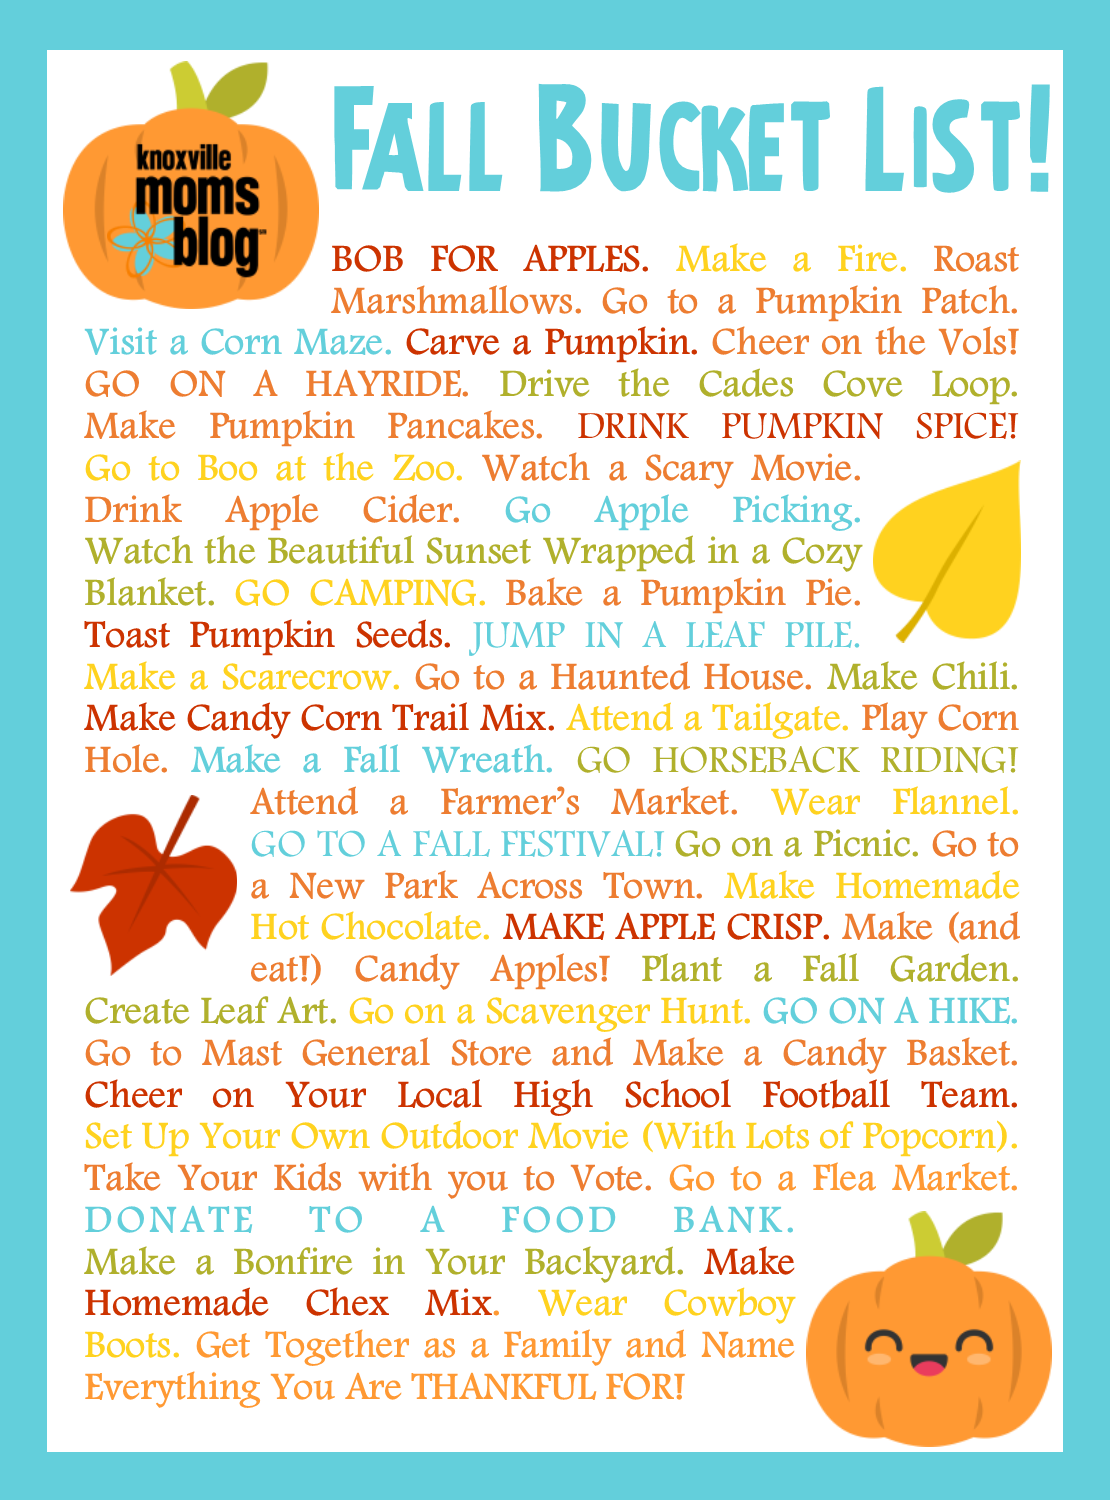 Fall Bucket List: 50 Fun Fall Things to Do in Knoxville | Knoxville Mom's Blog